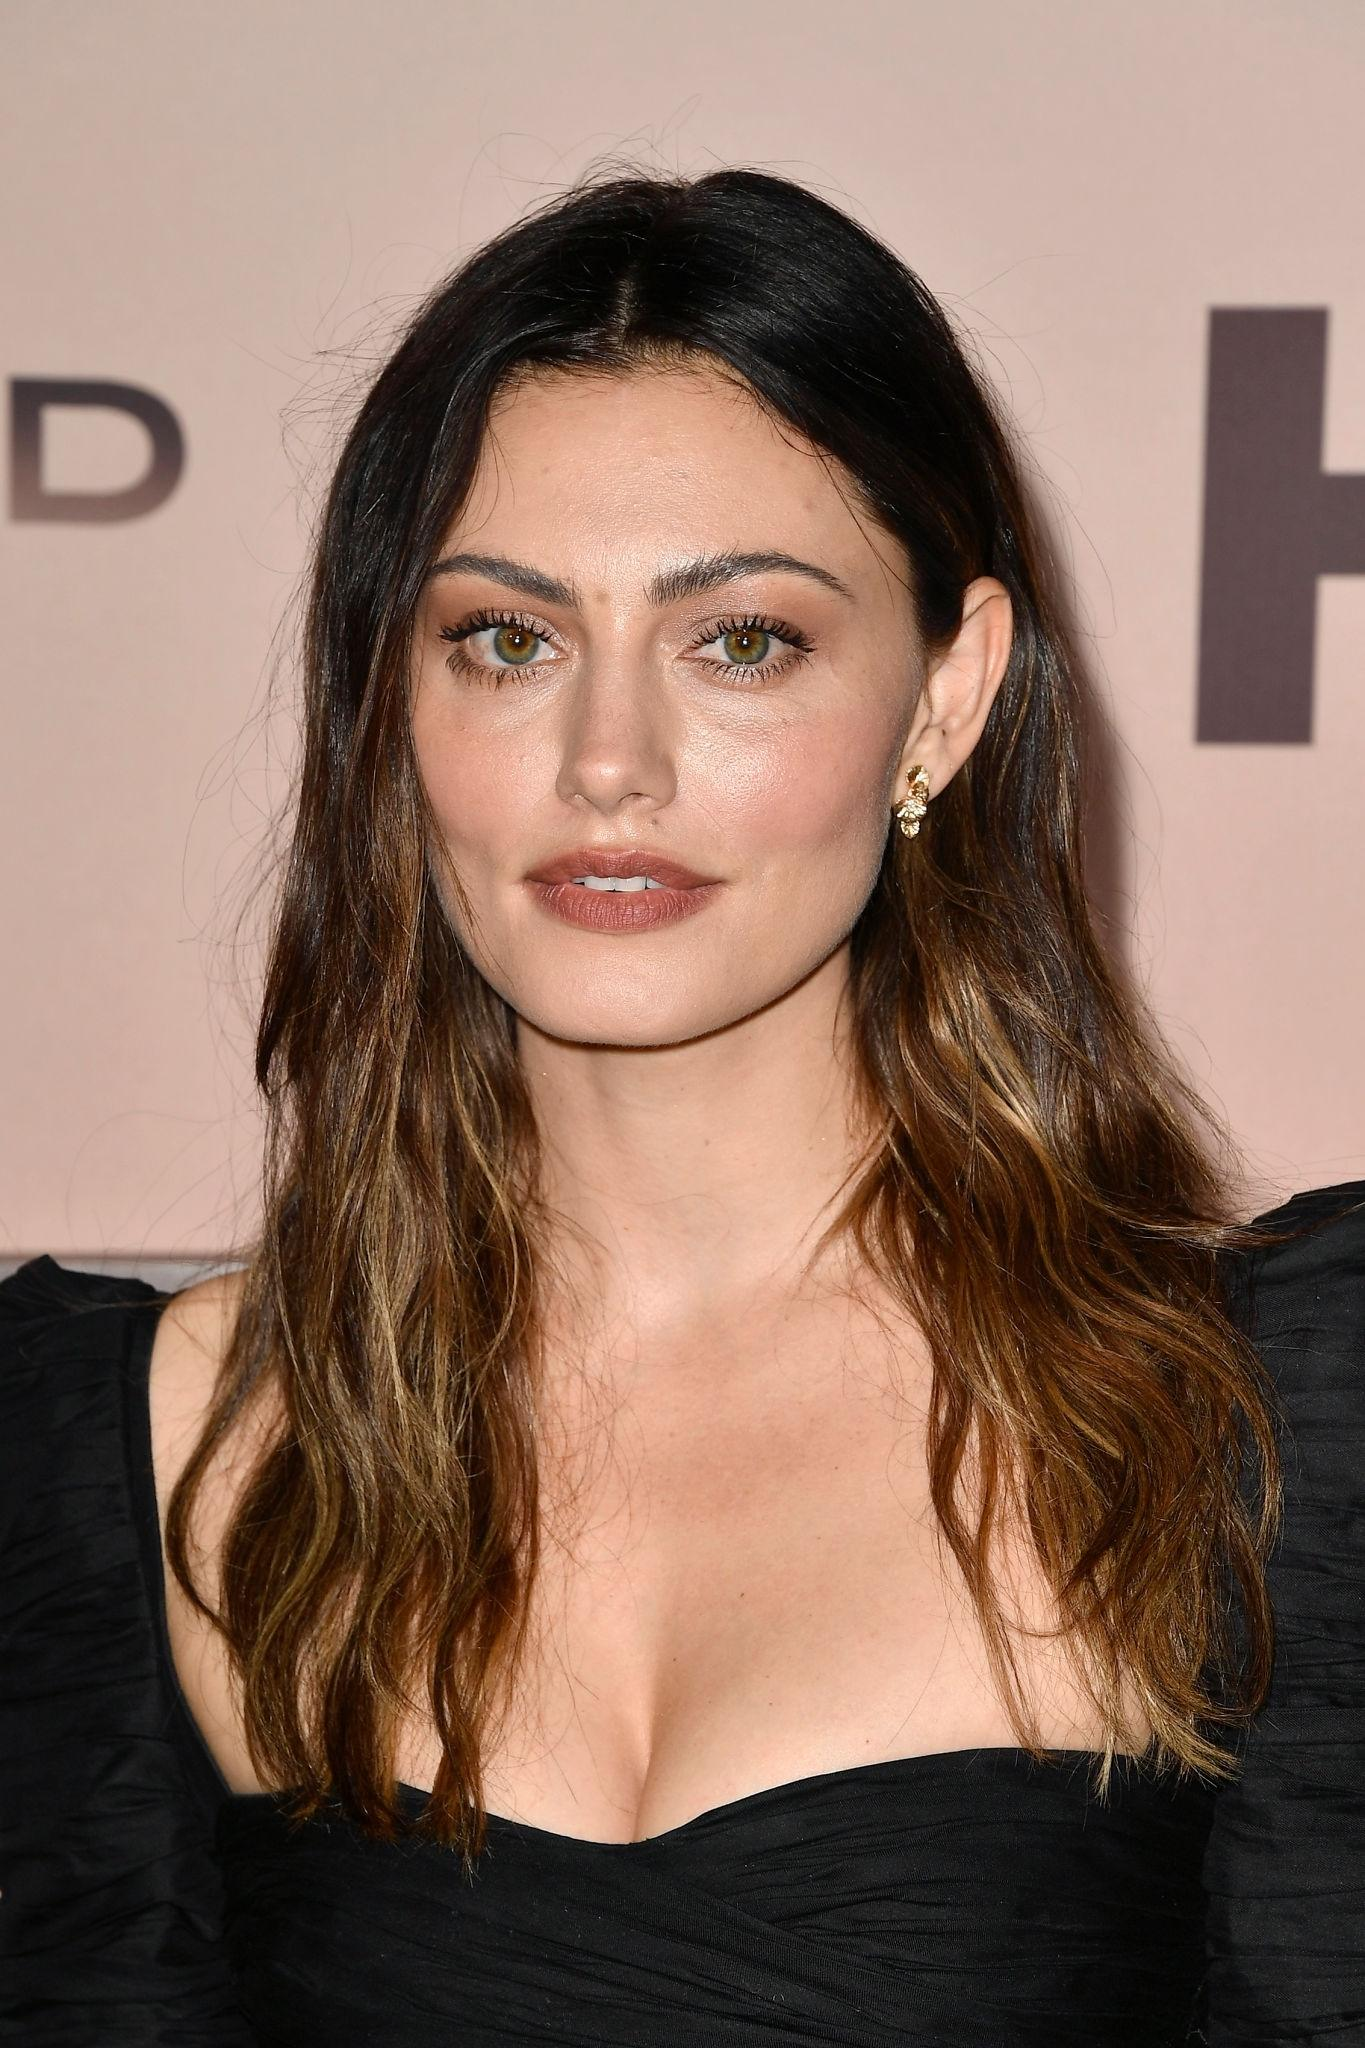 Phoebe-Tonkin-at-Westworld-Season-3-Premiere-in-Hollywood-1